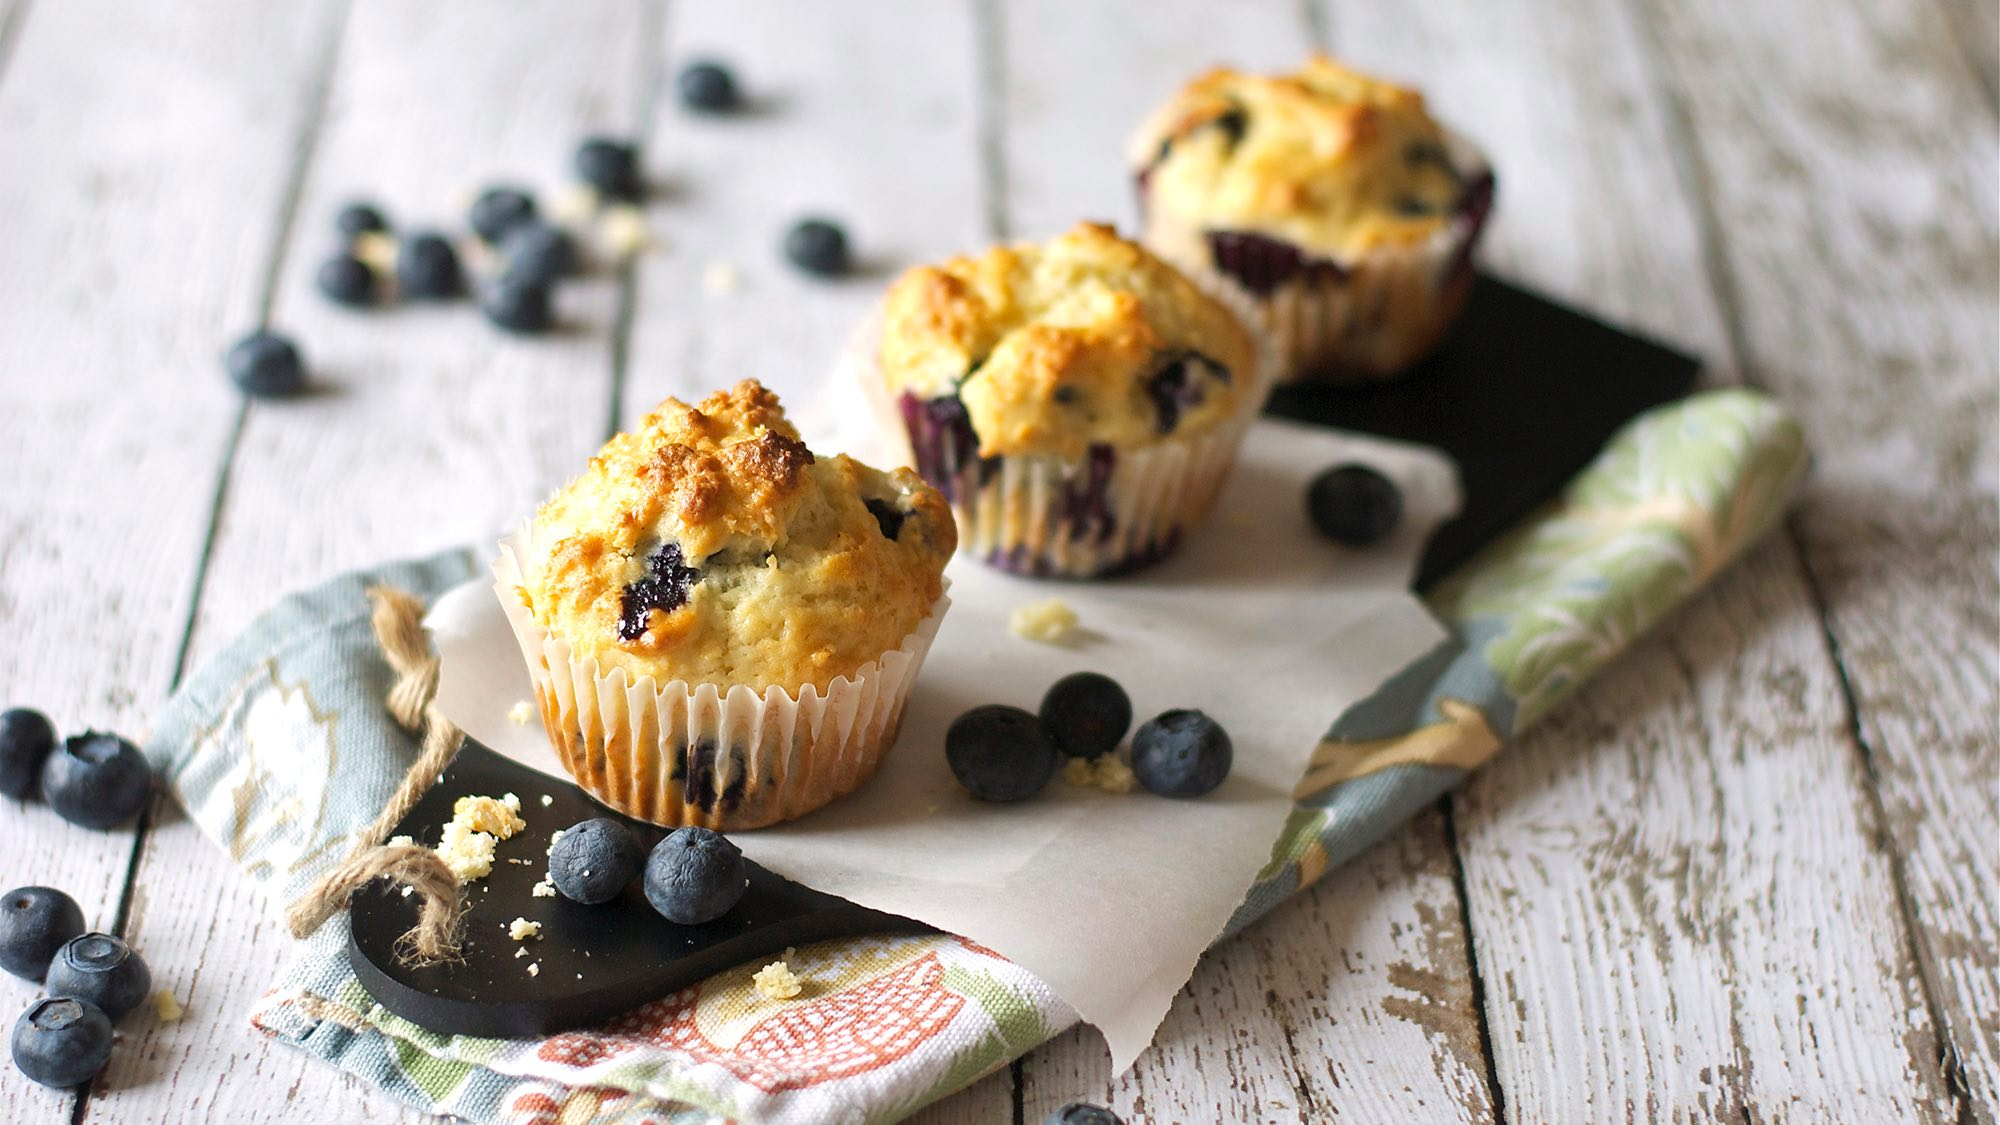 McCormick Lemon Ginger Blueberry Muffins